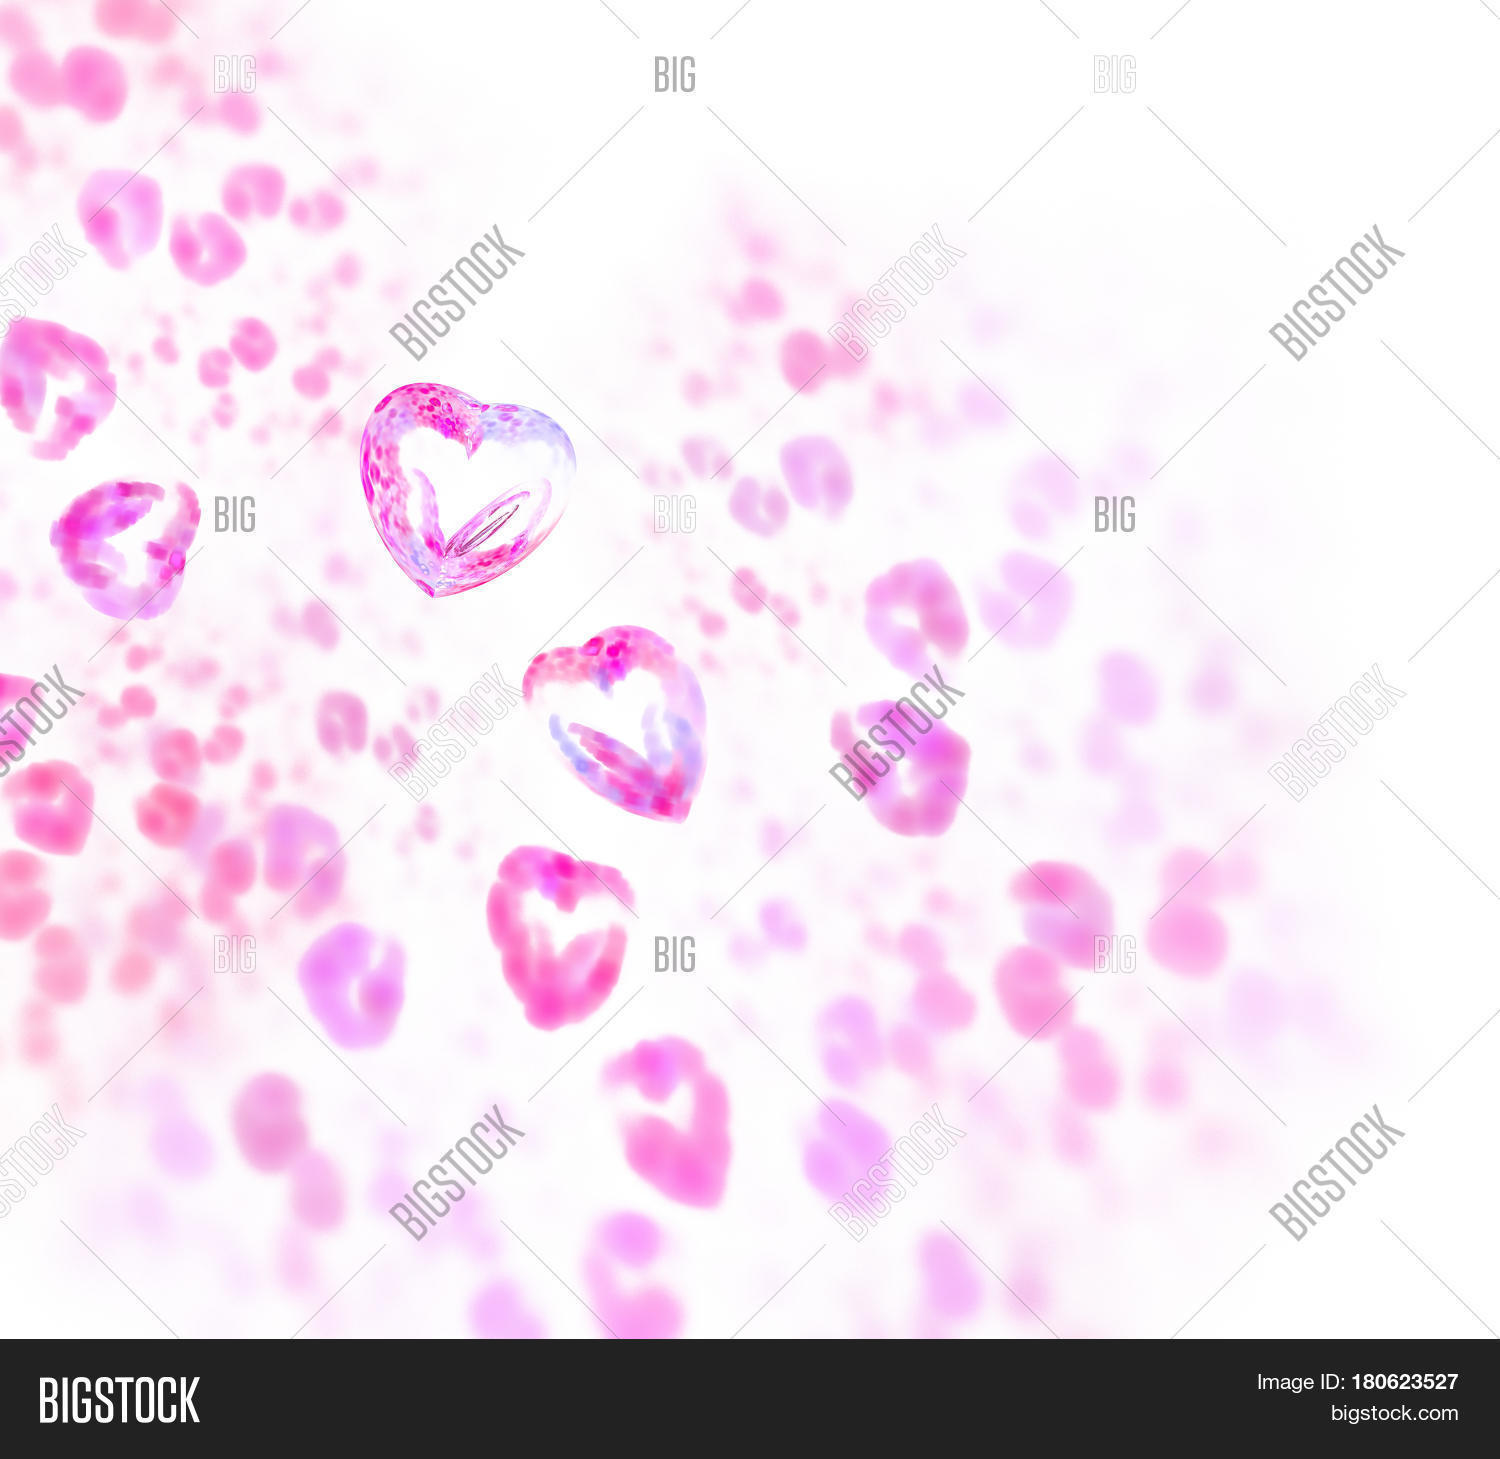 Abstract White Fractal Image Photo Free Trial Bigstock